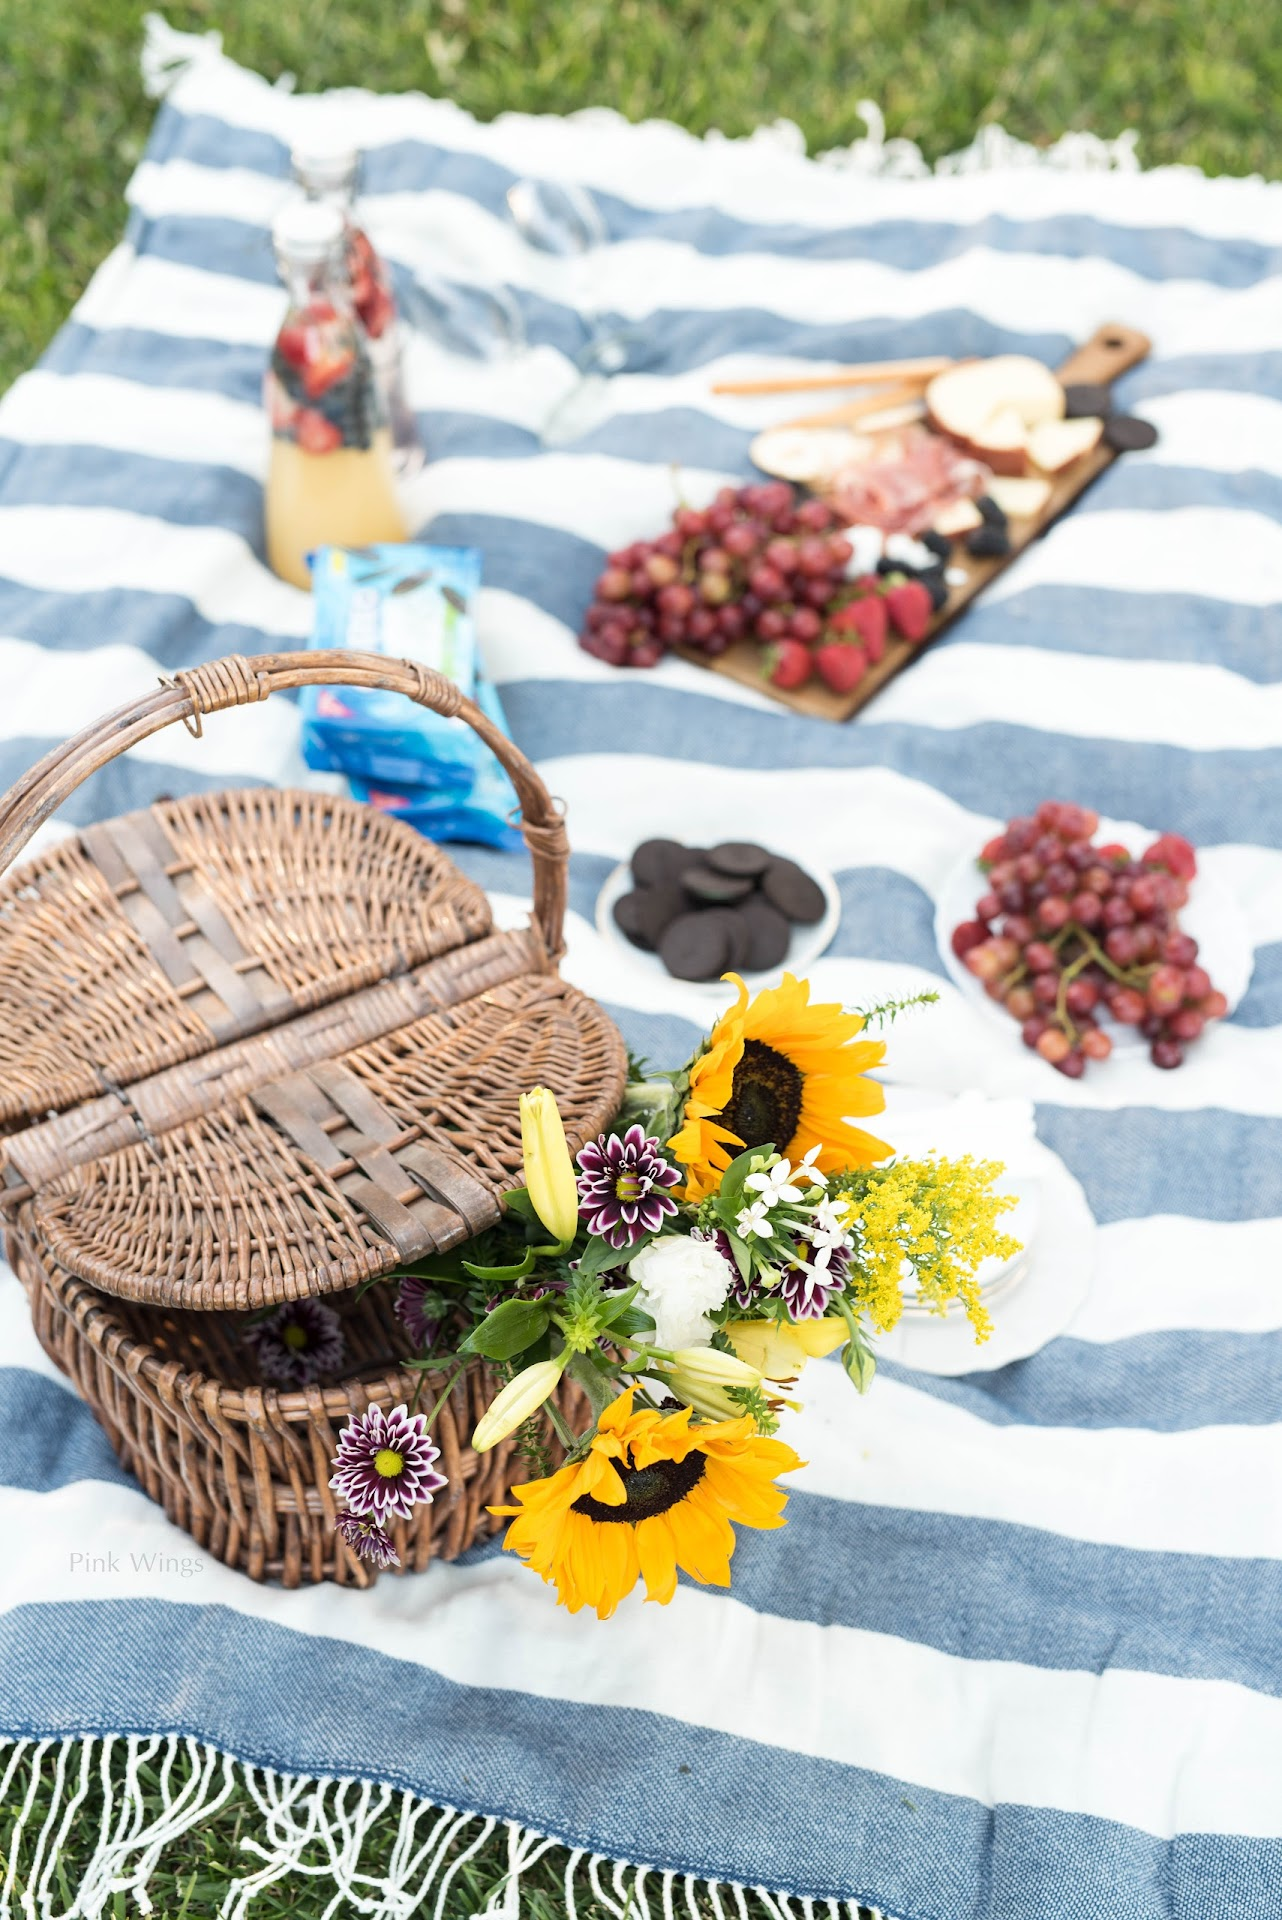 romantic picnic, picnic for two, how to throw the perfect picnic, picnic ideas, where to buy a picnic basket, tips for picnics, picnic blanket, picnic food ideas, picnic dessert, sunflowers, picnic flowers